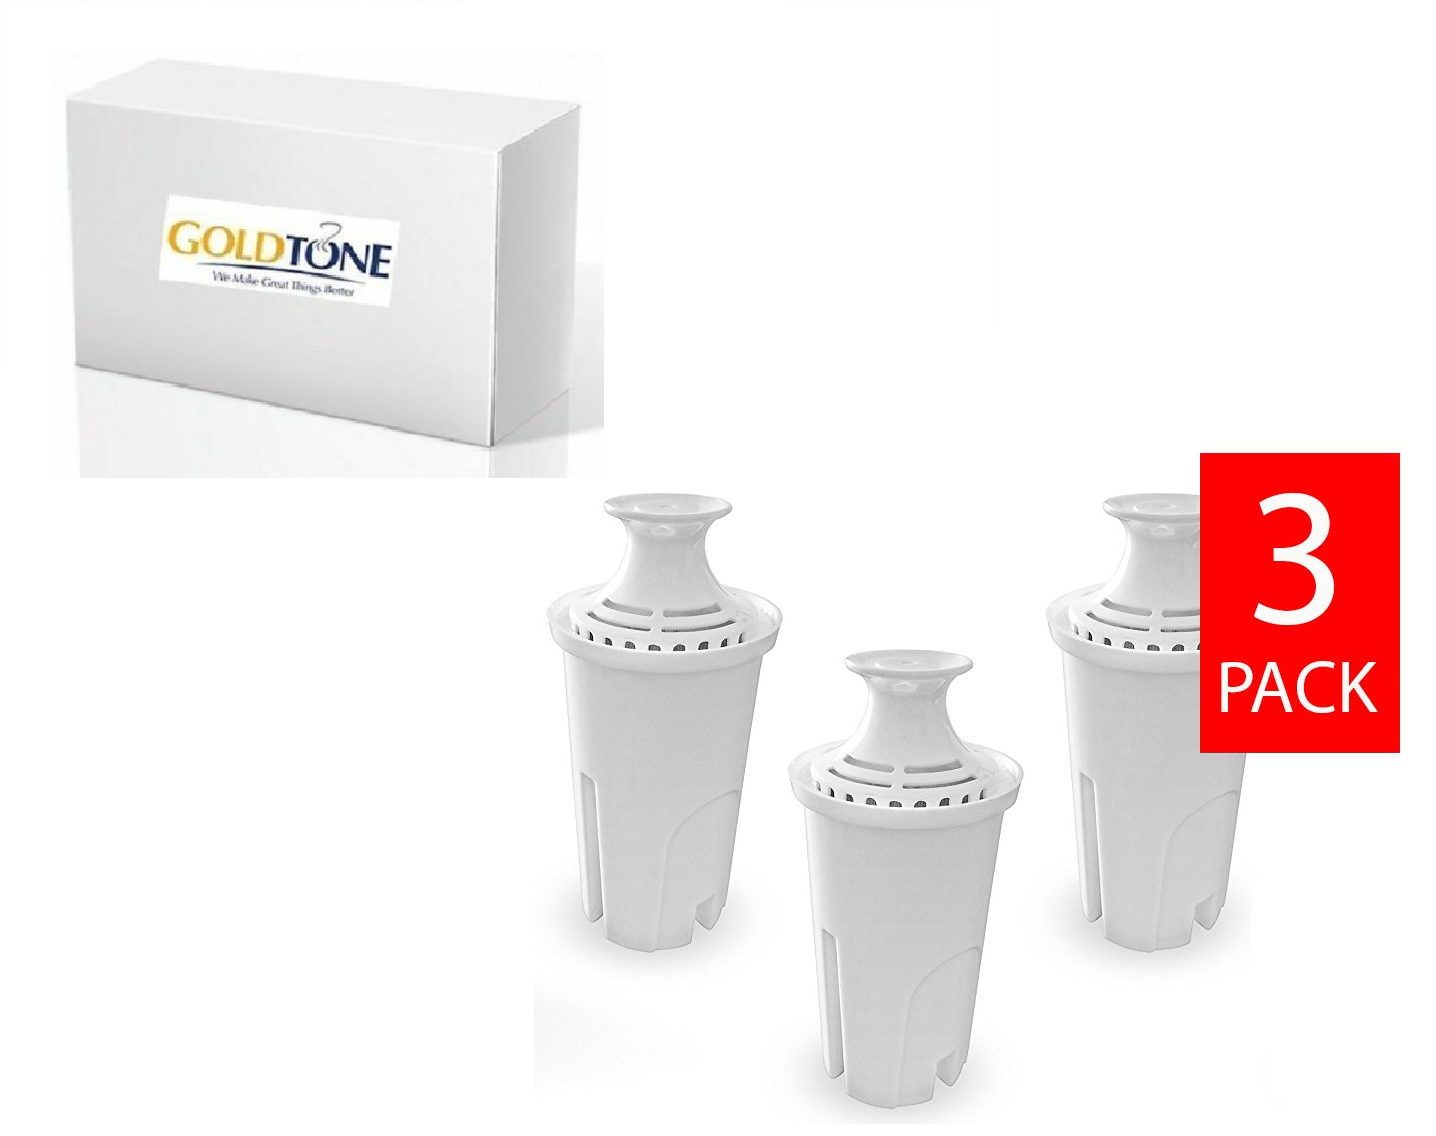 GoldTone Water Filters fits Brita and Mavea Water Pitchers.